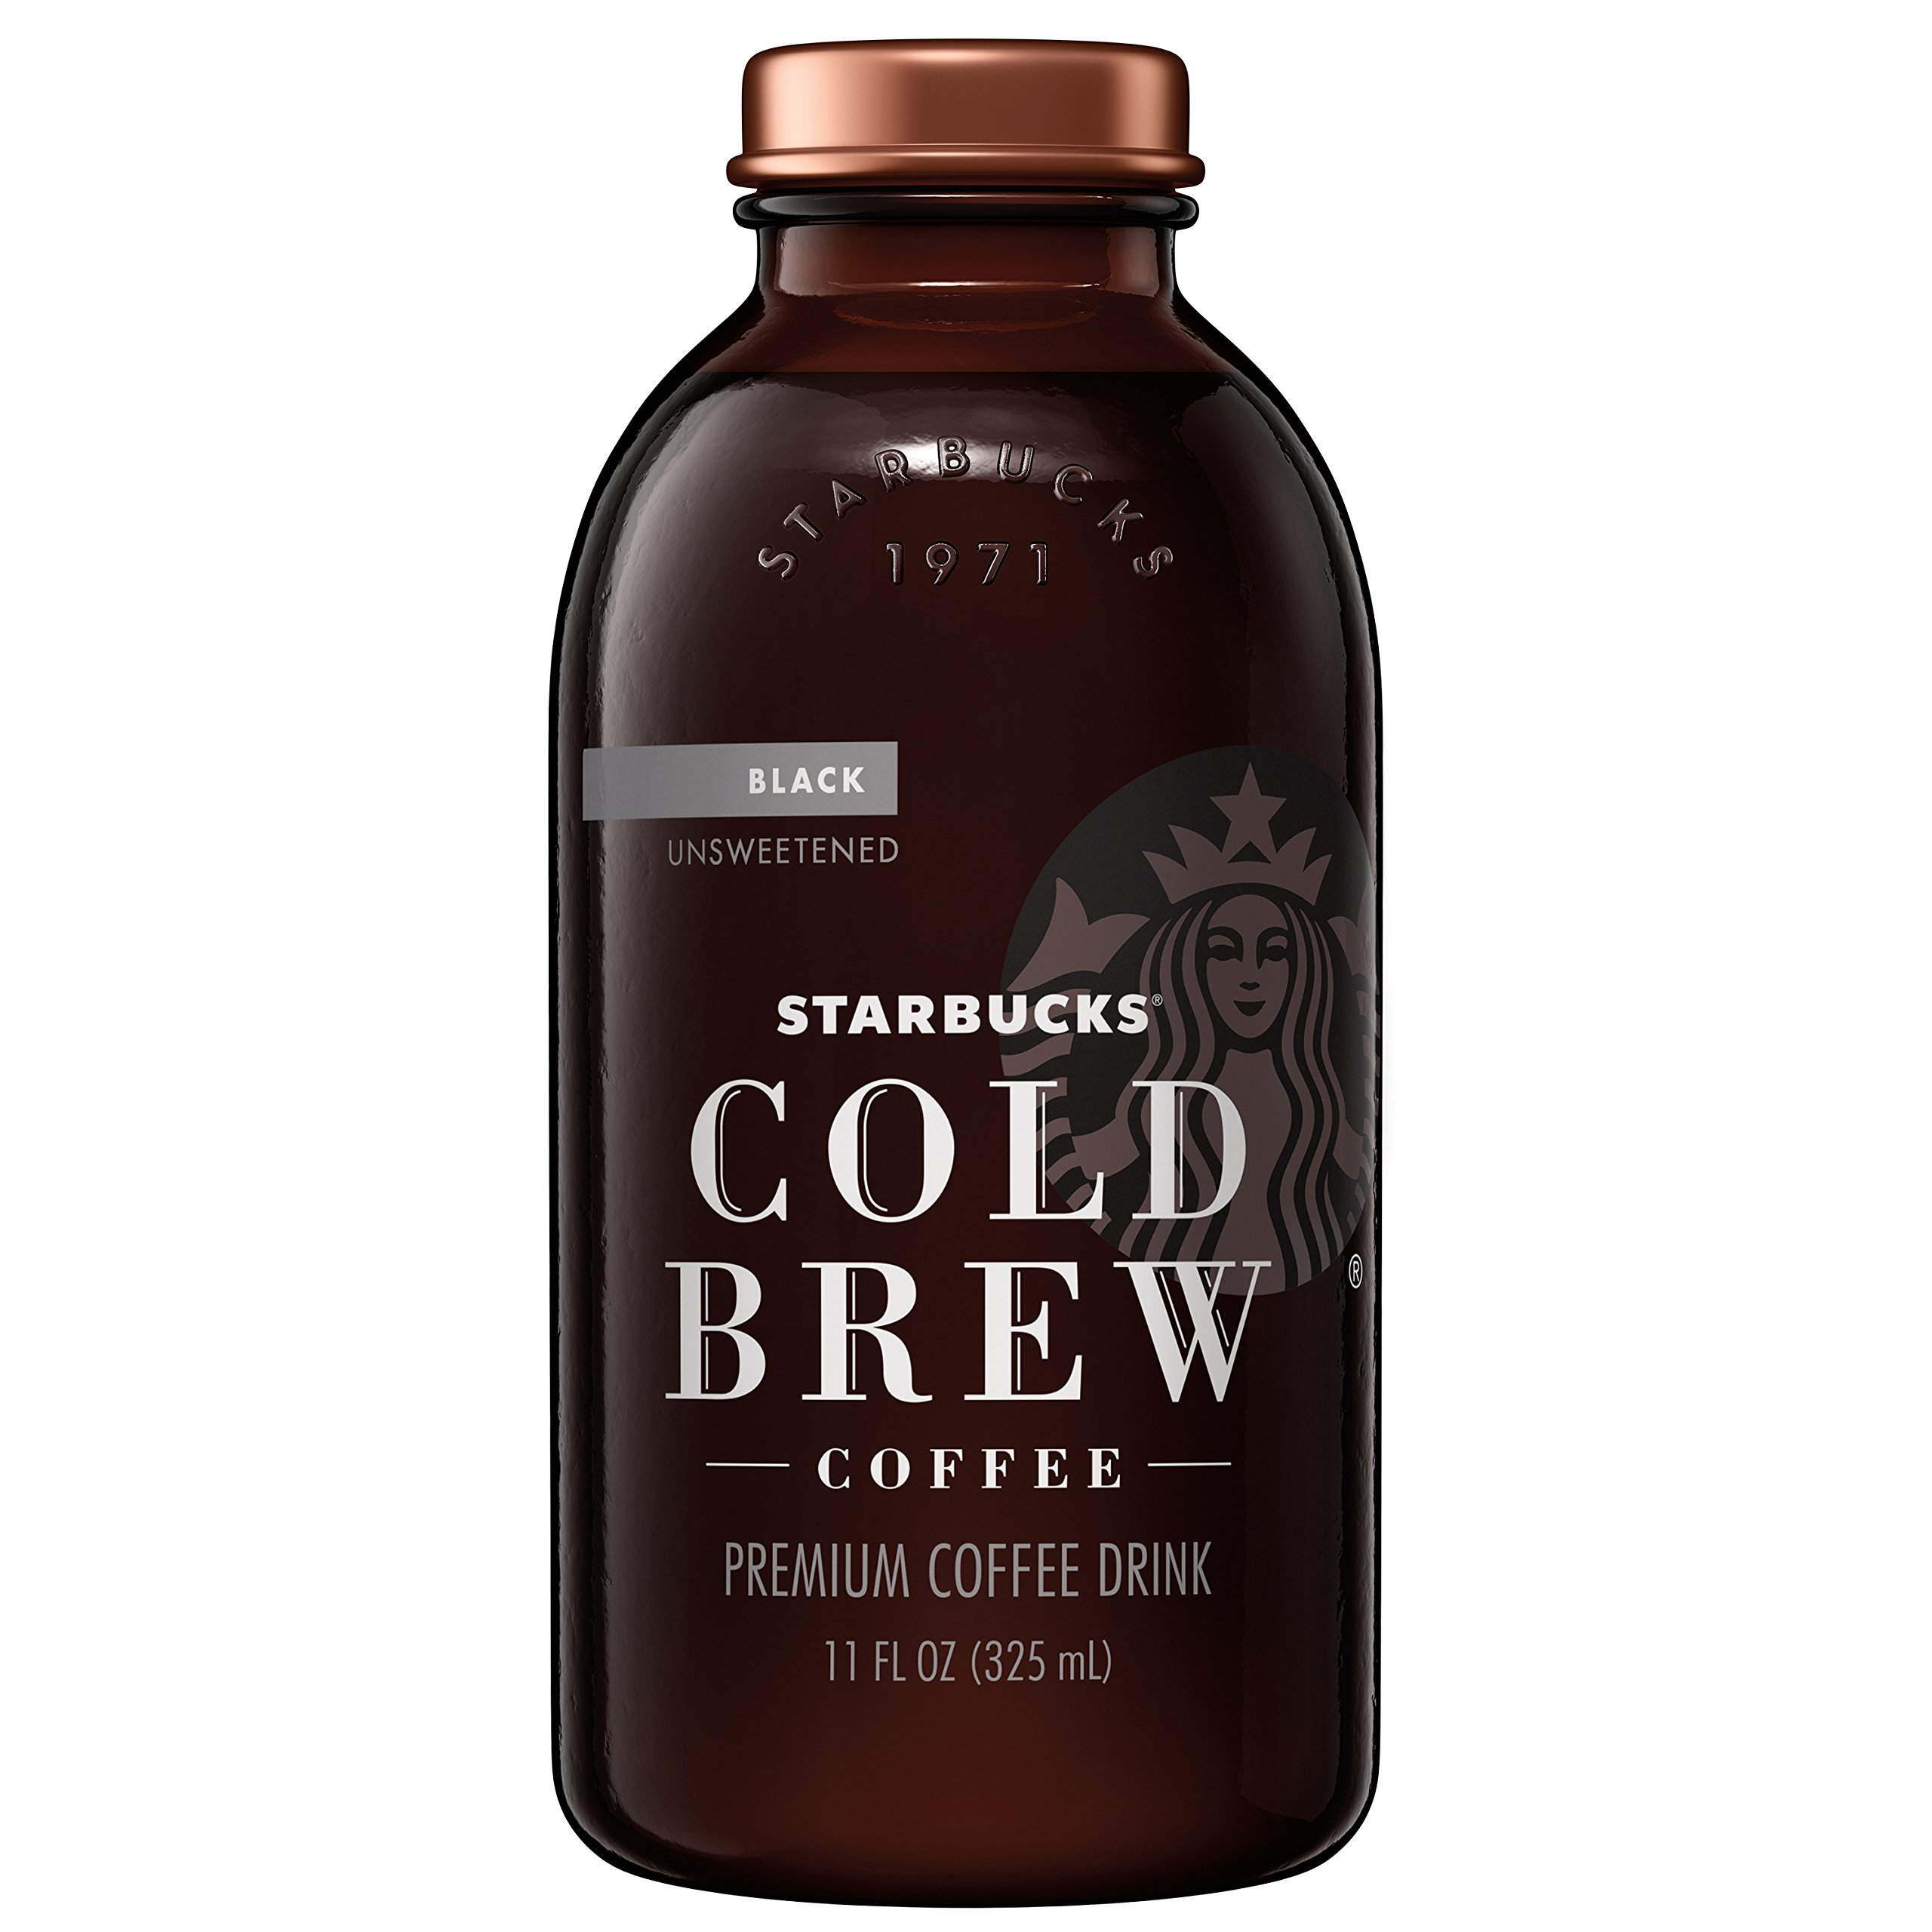 Starbucks Cold Brew Coffee, Black Unsweetened, 11 oz Glass Bottles, 6 Count by Starbucks (Image #1)